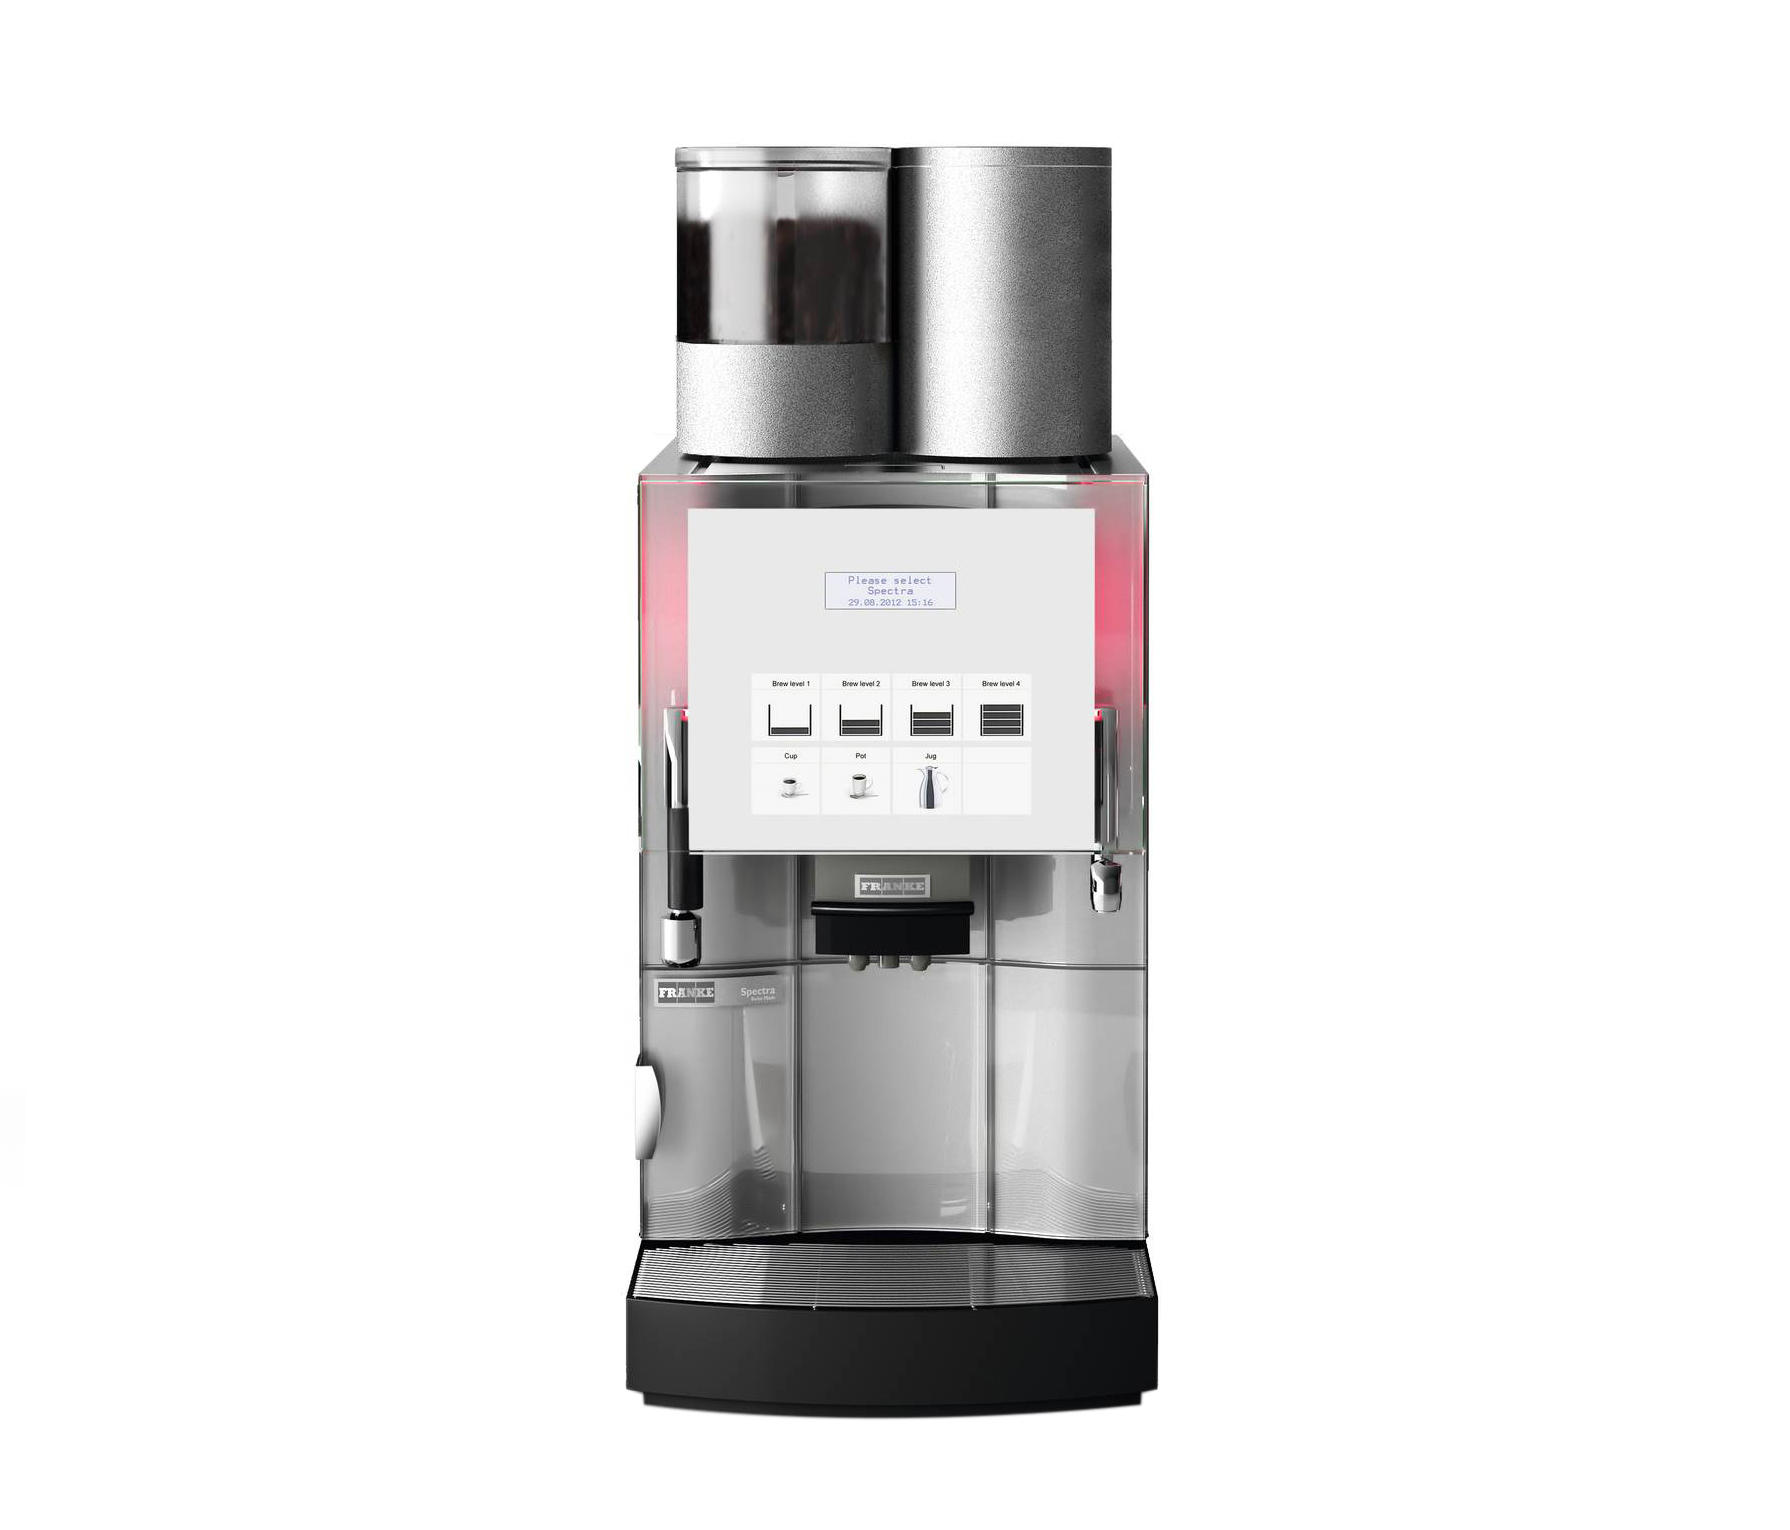 spectra x coffee machines from franke kaffeemaschinen ag architonic. Black Bedroom Furniture Sets. Home Design Ideas